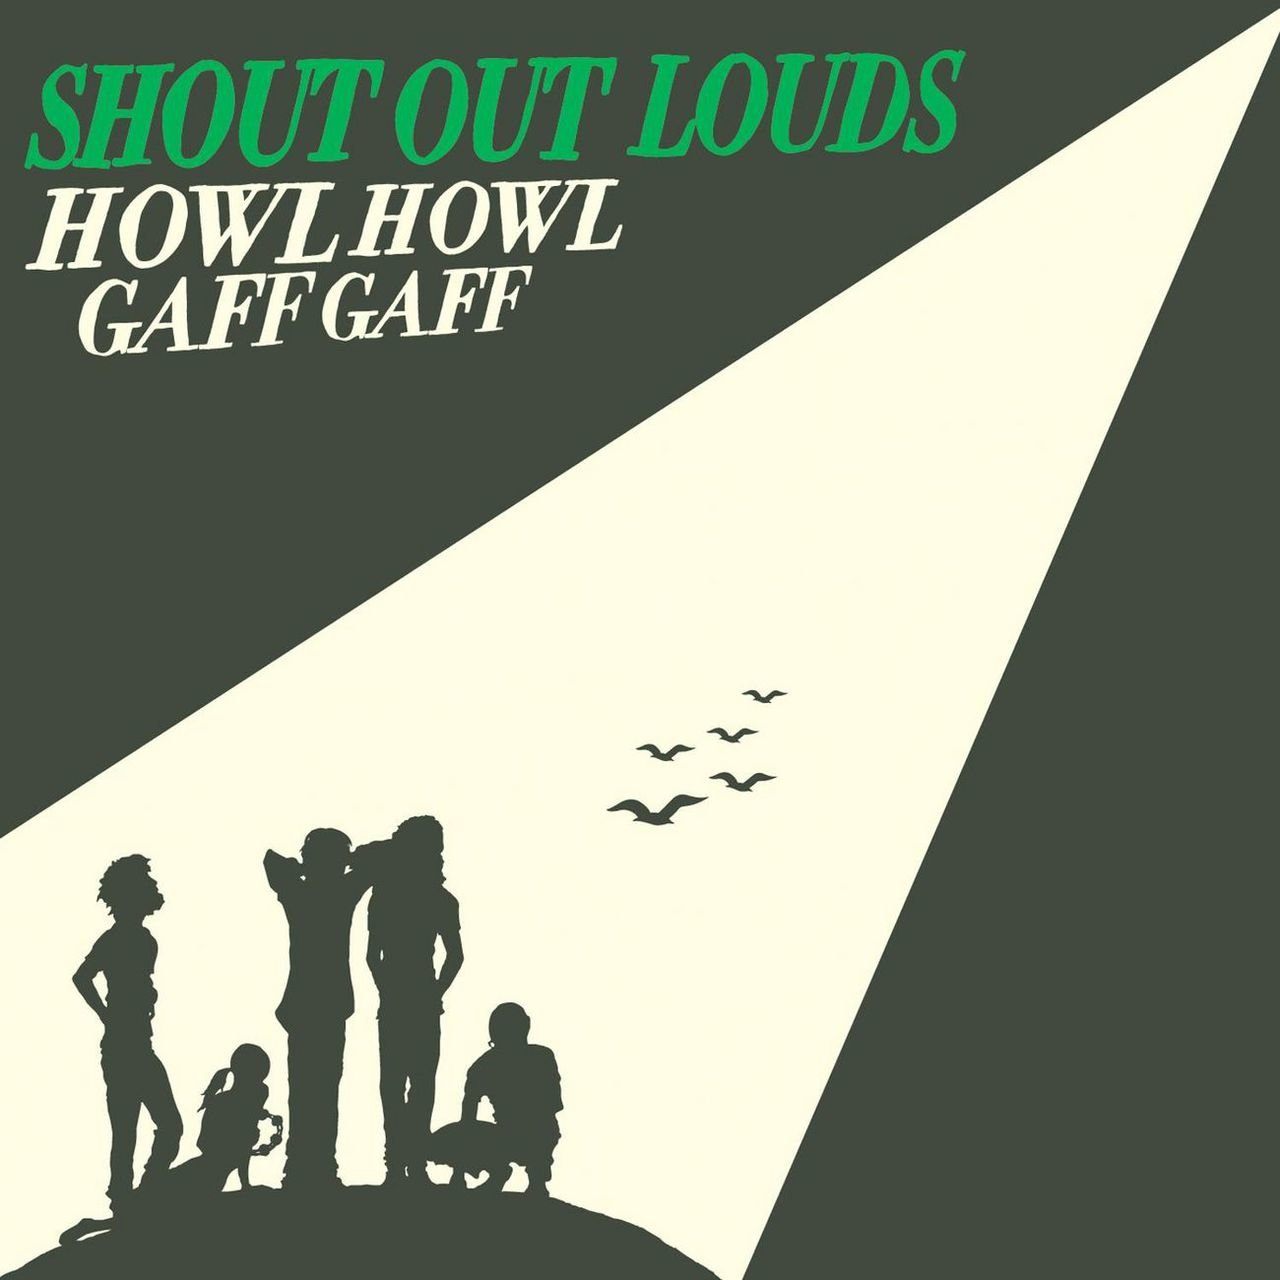 Track 3 - (7:24) Shout Out Louds - 100°